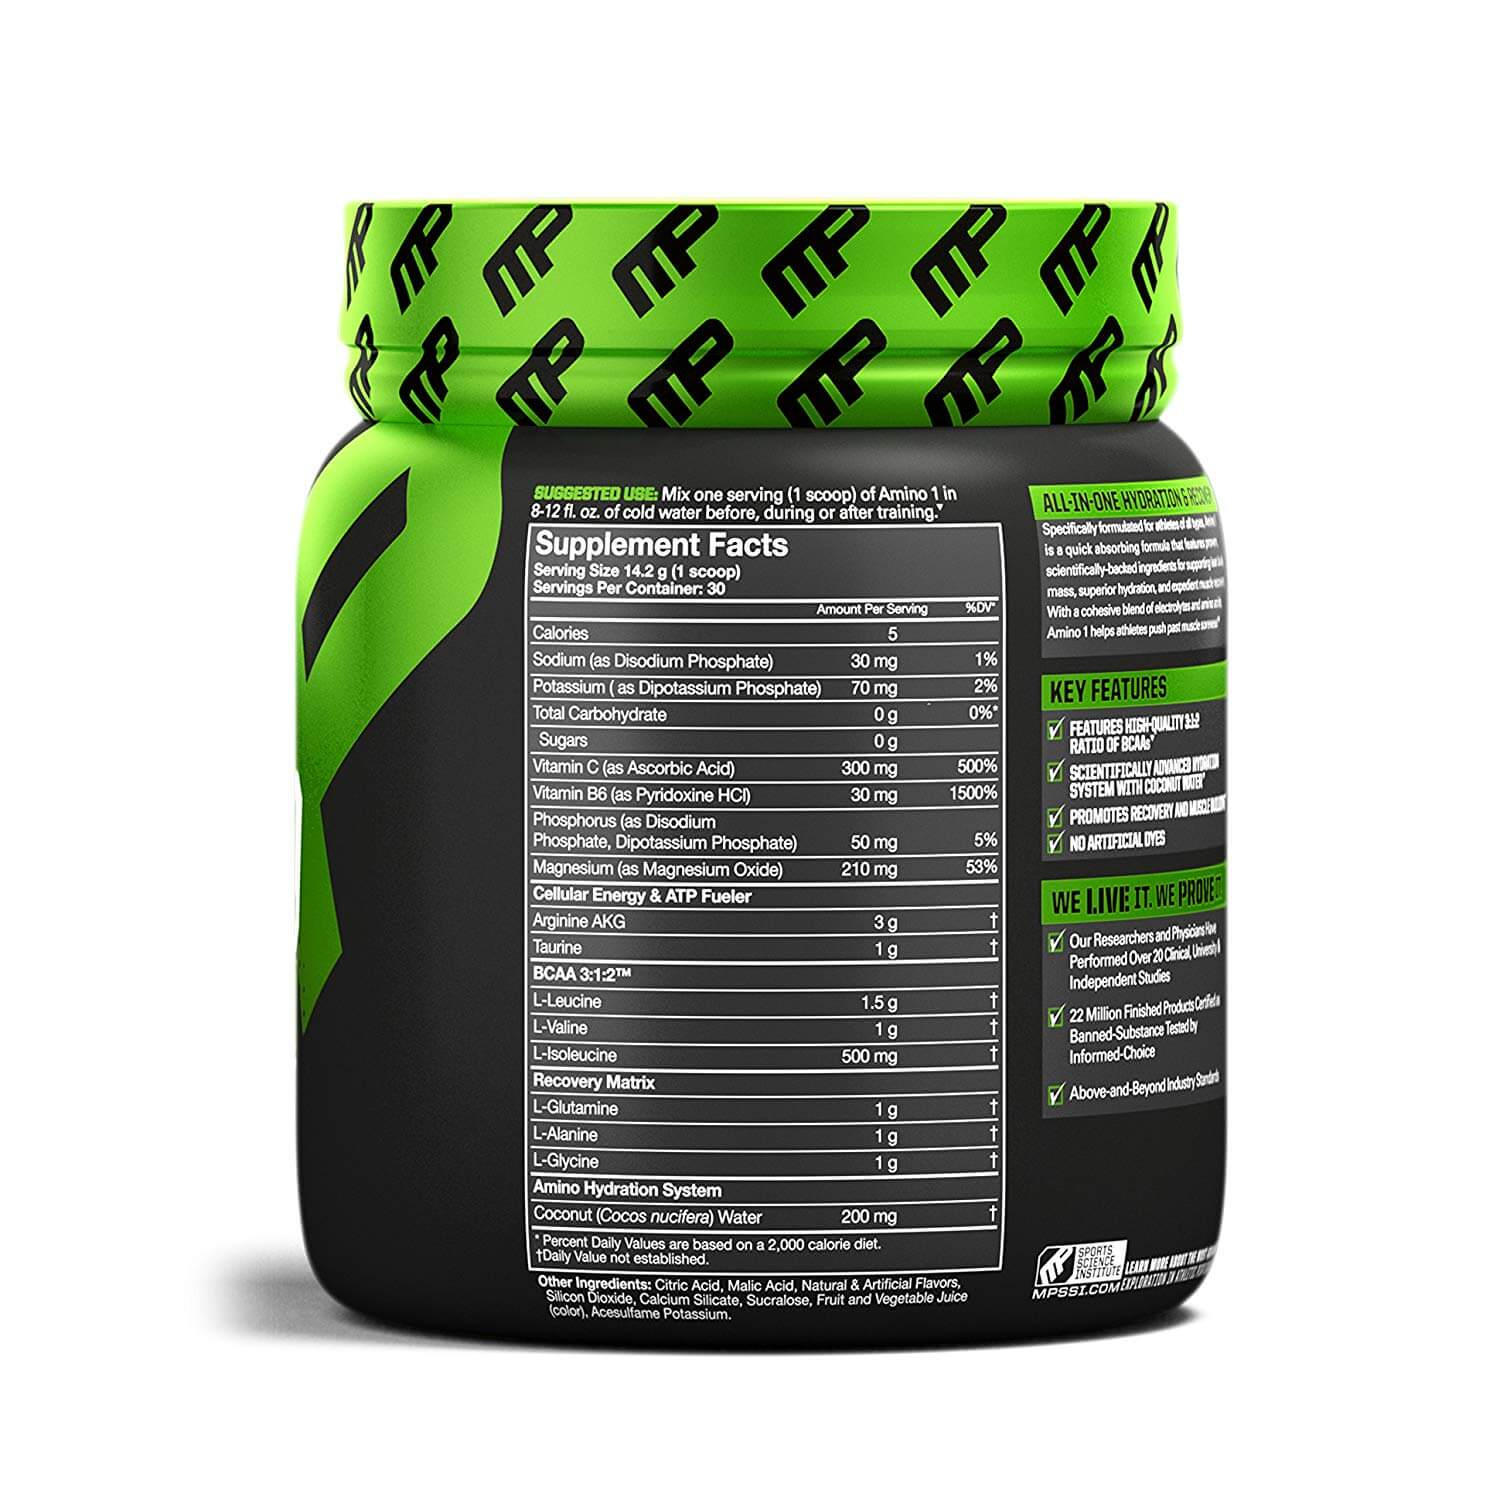 Amino1 Sup Facts